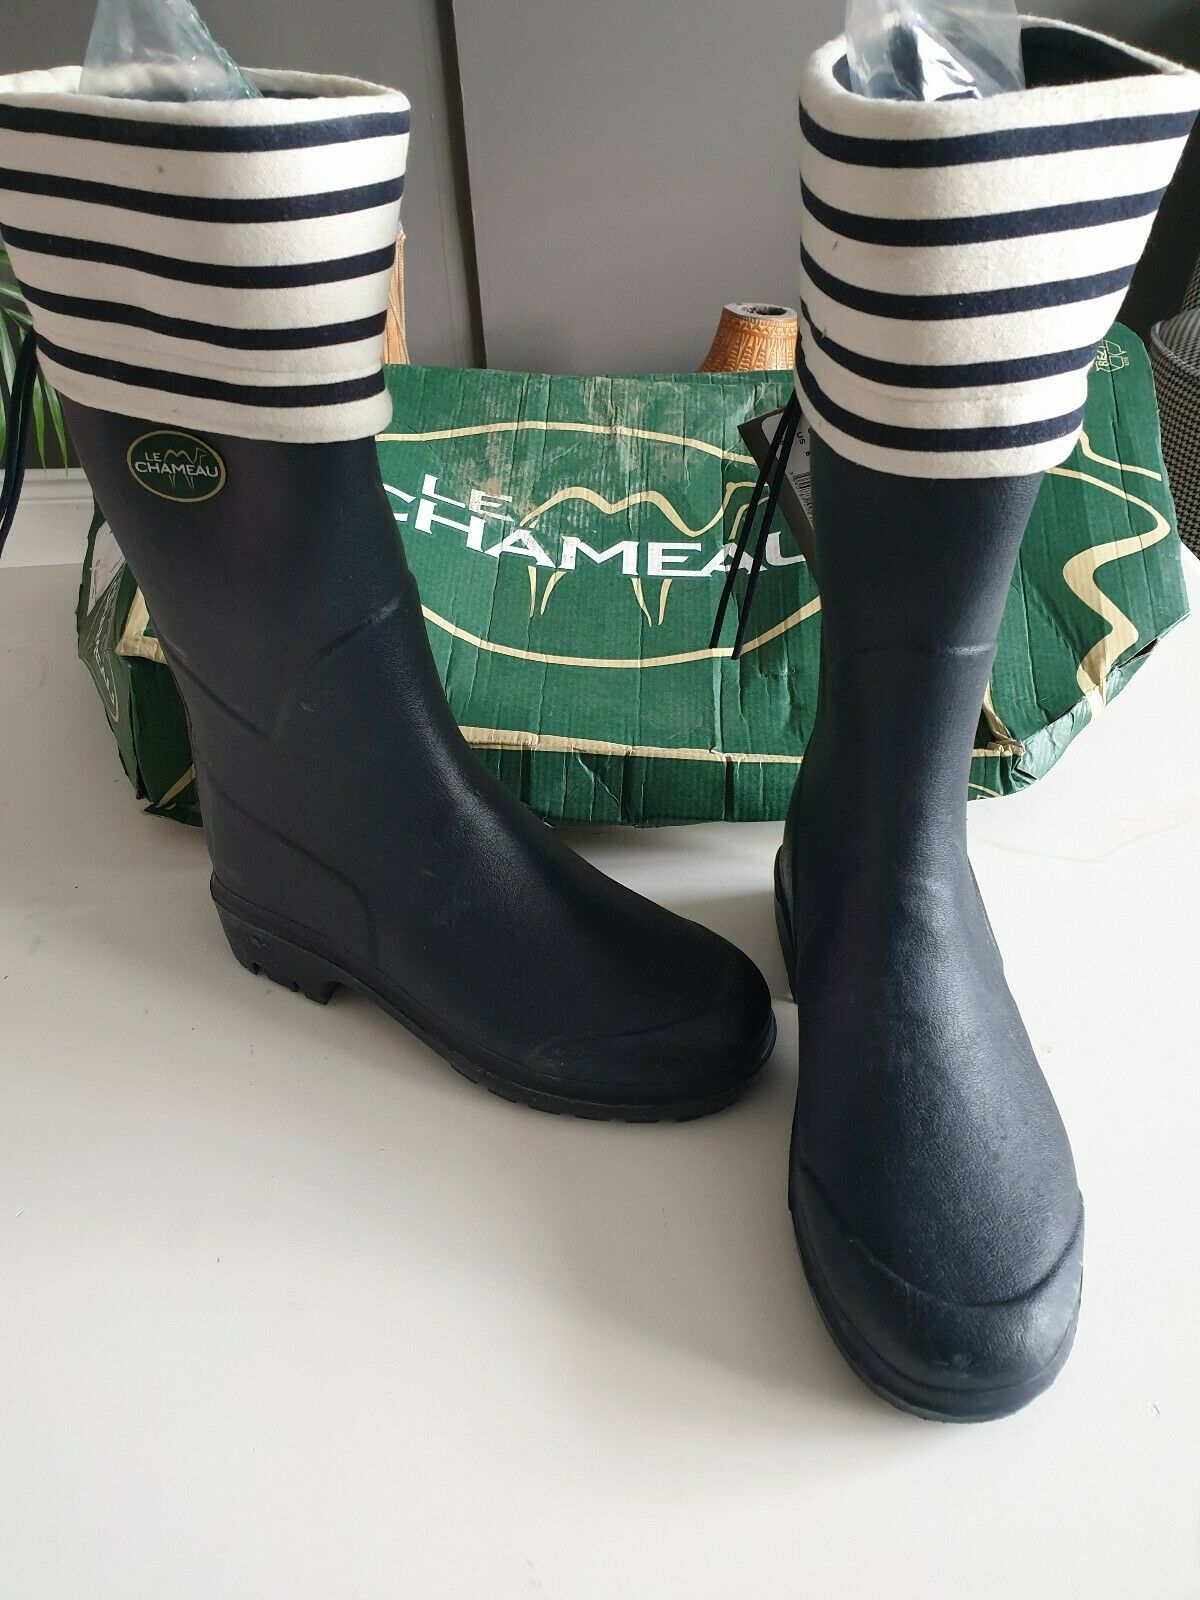 Le Chameau Clan Marine Rubber Mid  Boots Size 38 bluee Marine NEW